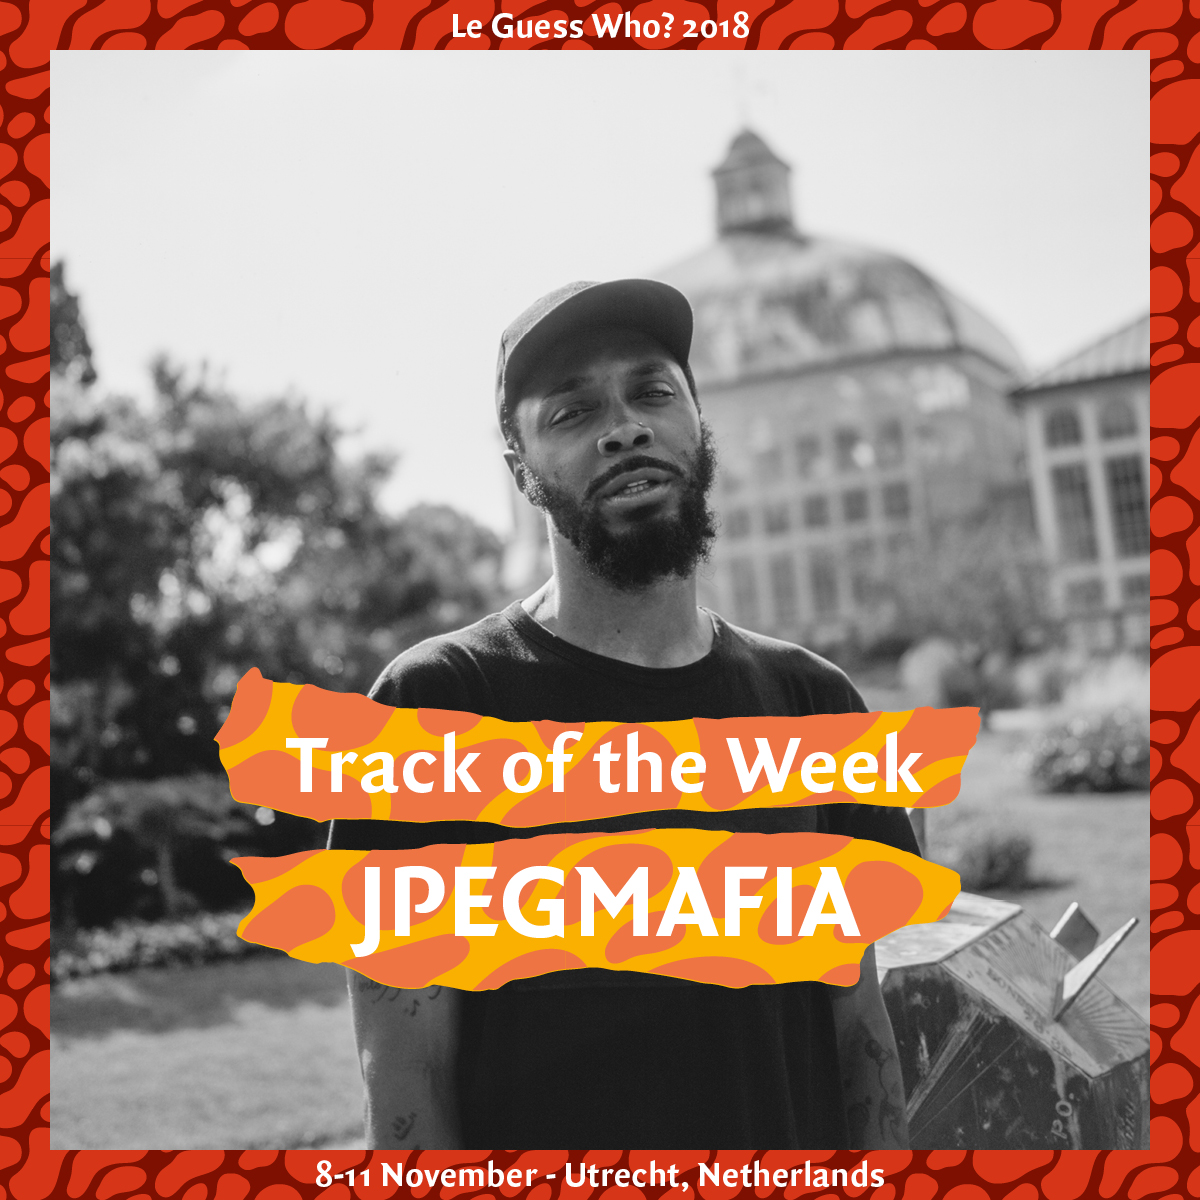 Track of the Week #16: JPEGMAFIA - '1539 N. Calvert'